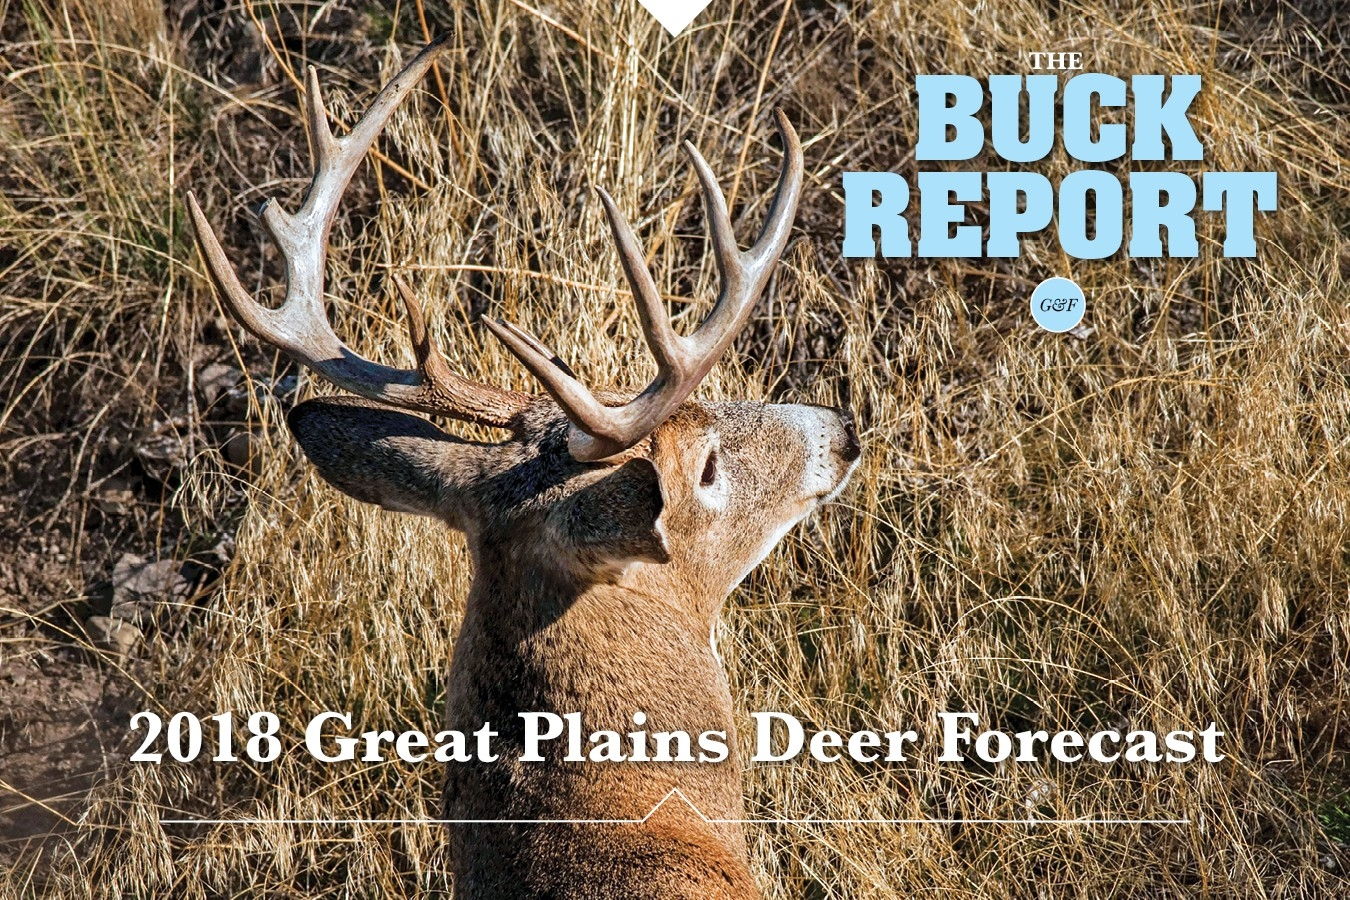 2018 Great Plains Deer Forecast  2020 Deer Hunting Forecast